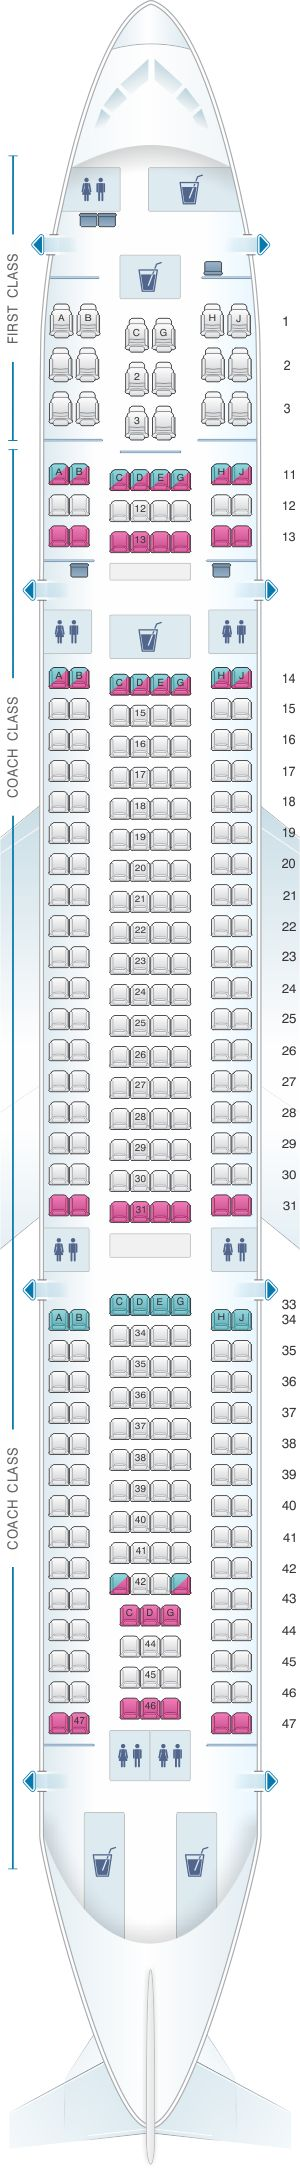 Best 25 Airbus A330 200 Seating Ideas On Pinterest Commercial Pilot School Airbus A330 300